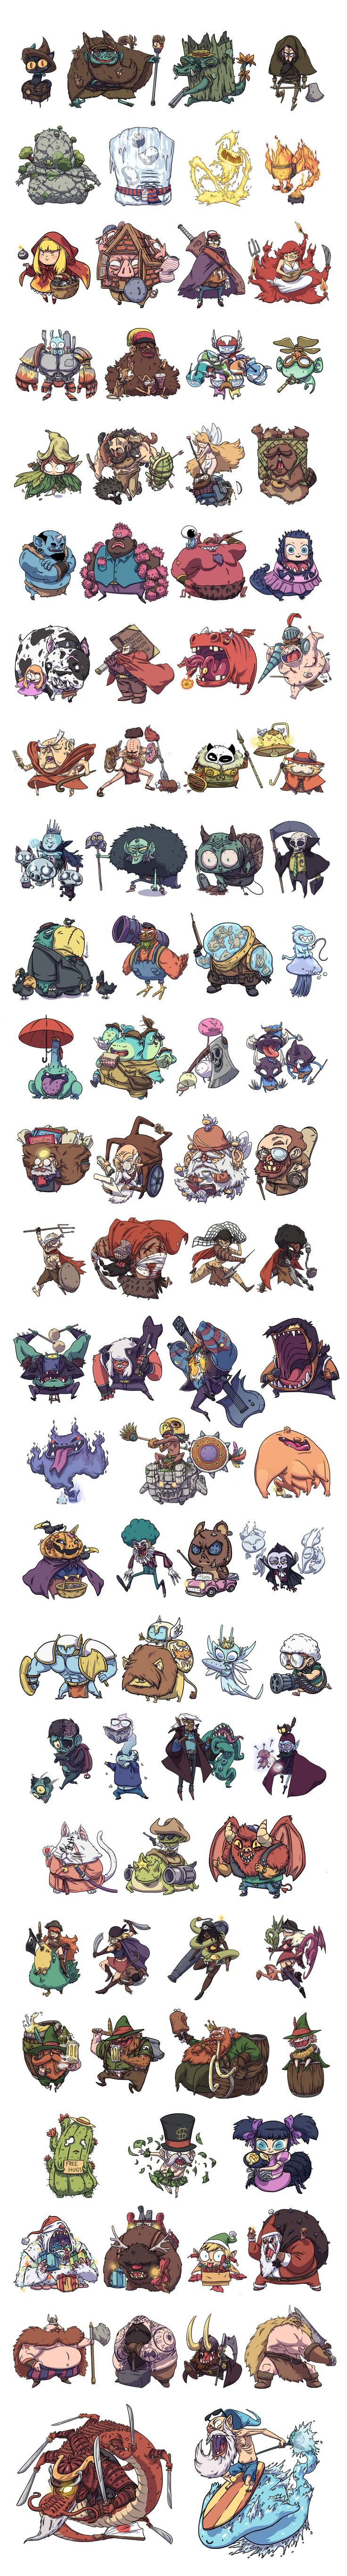 Character designs compilation by BattlePeach